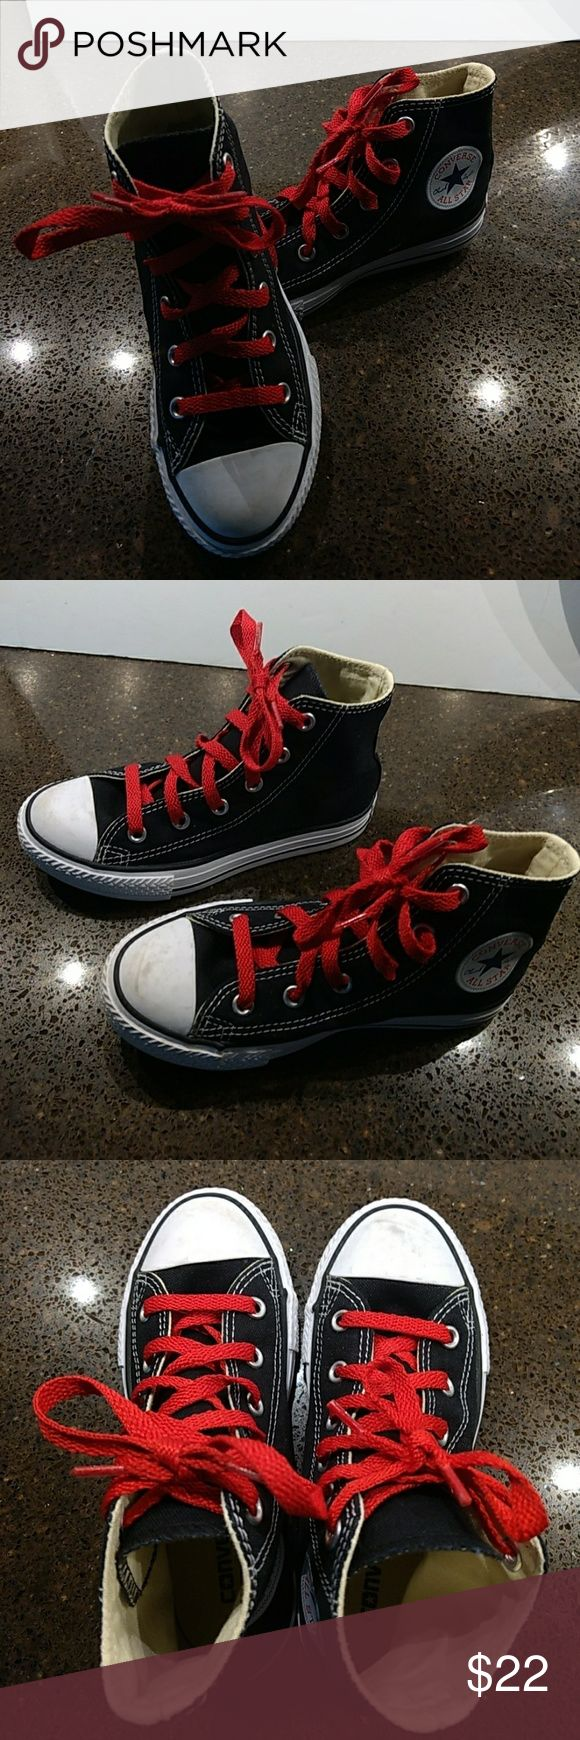 Boys Converse All Star high tops! Black all star high tops with red shoe laces. Excellent and almost new condition. Gently worn. Converse Shoes Sneakers